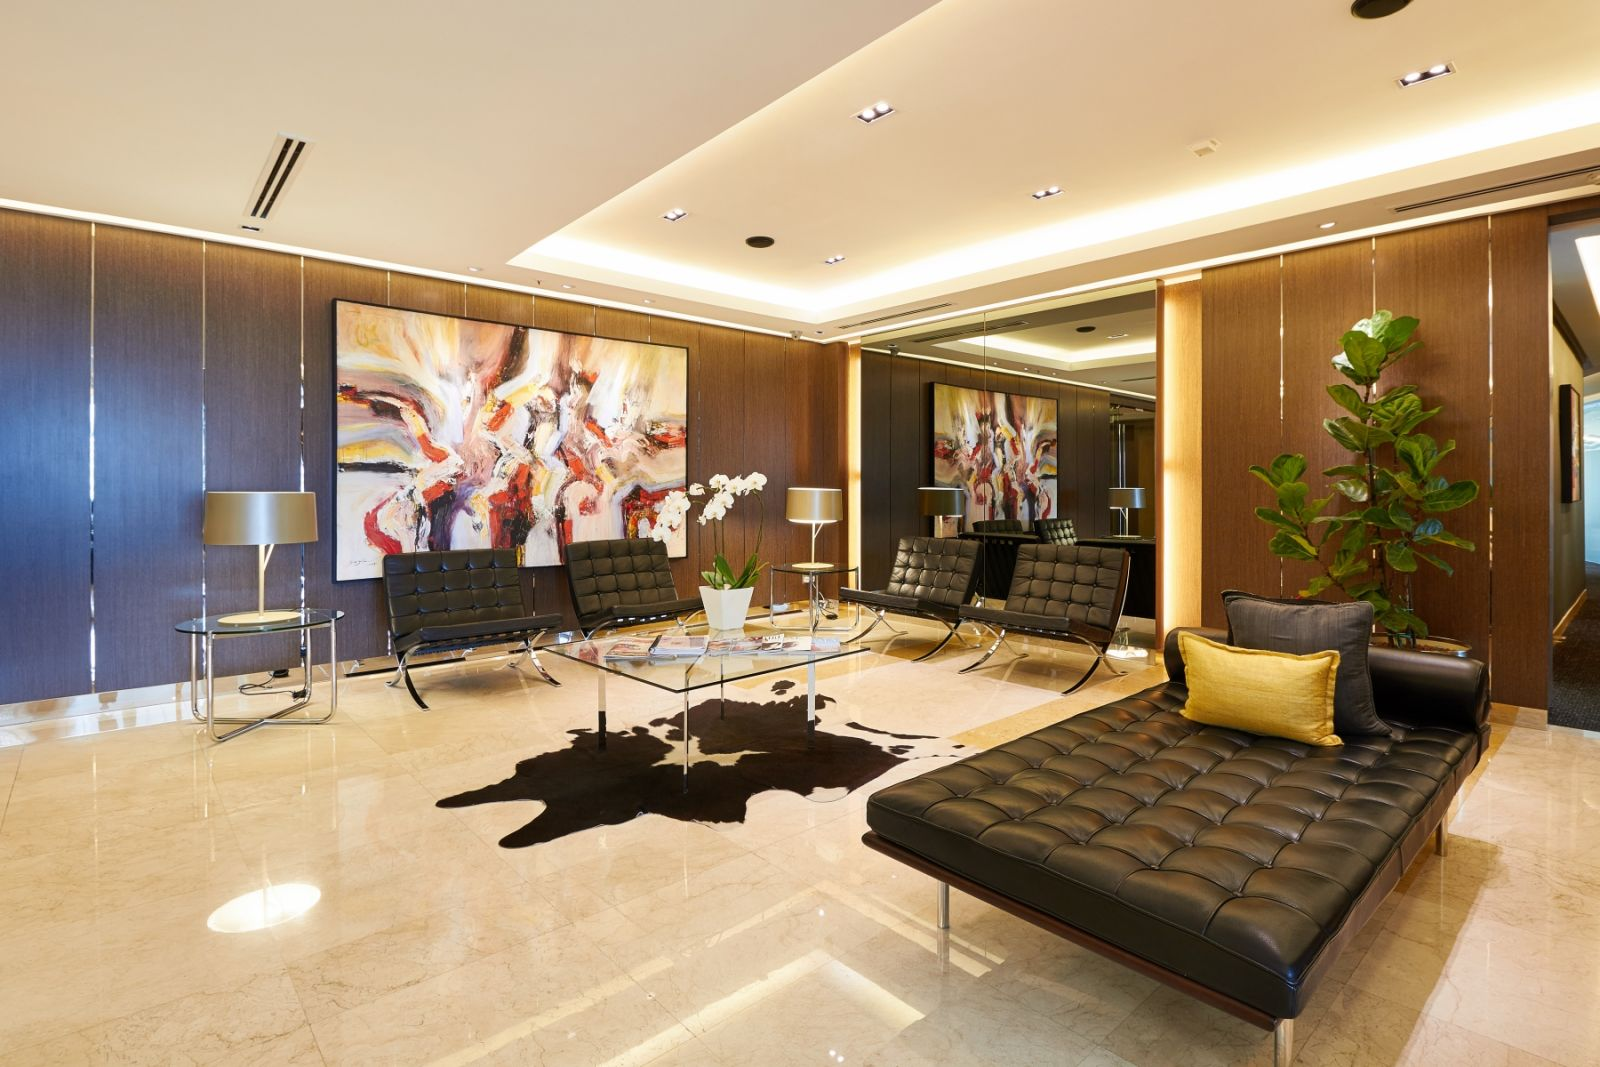 CEO Suite KL - Maxis Tower, Kuala Lumpur